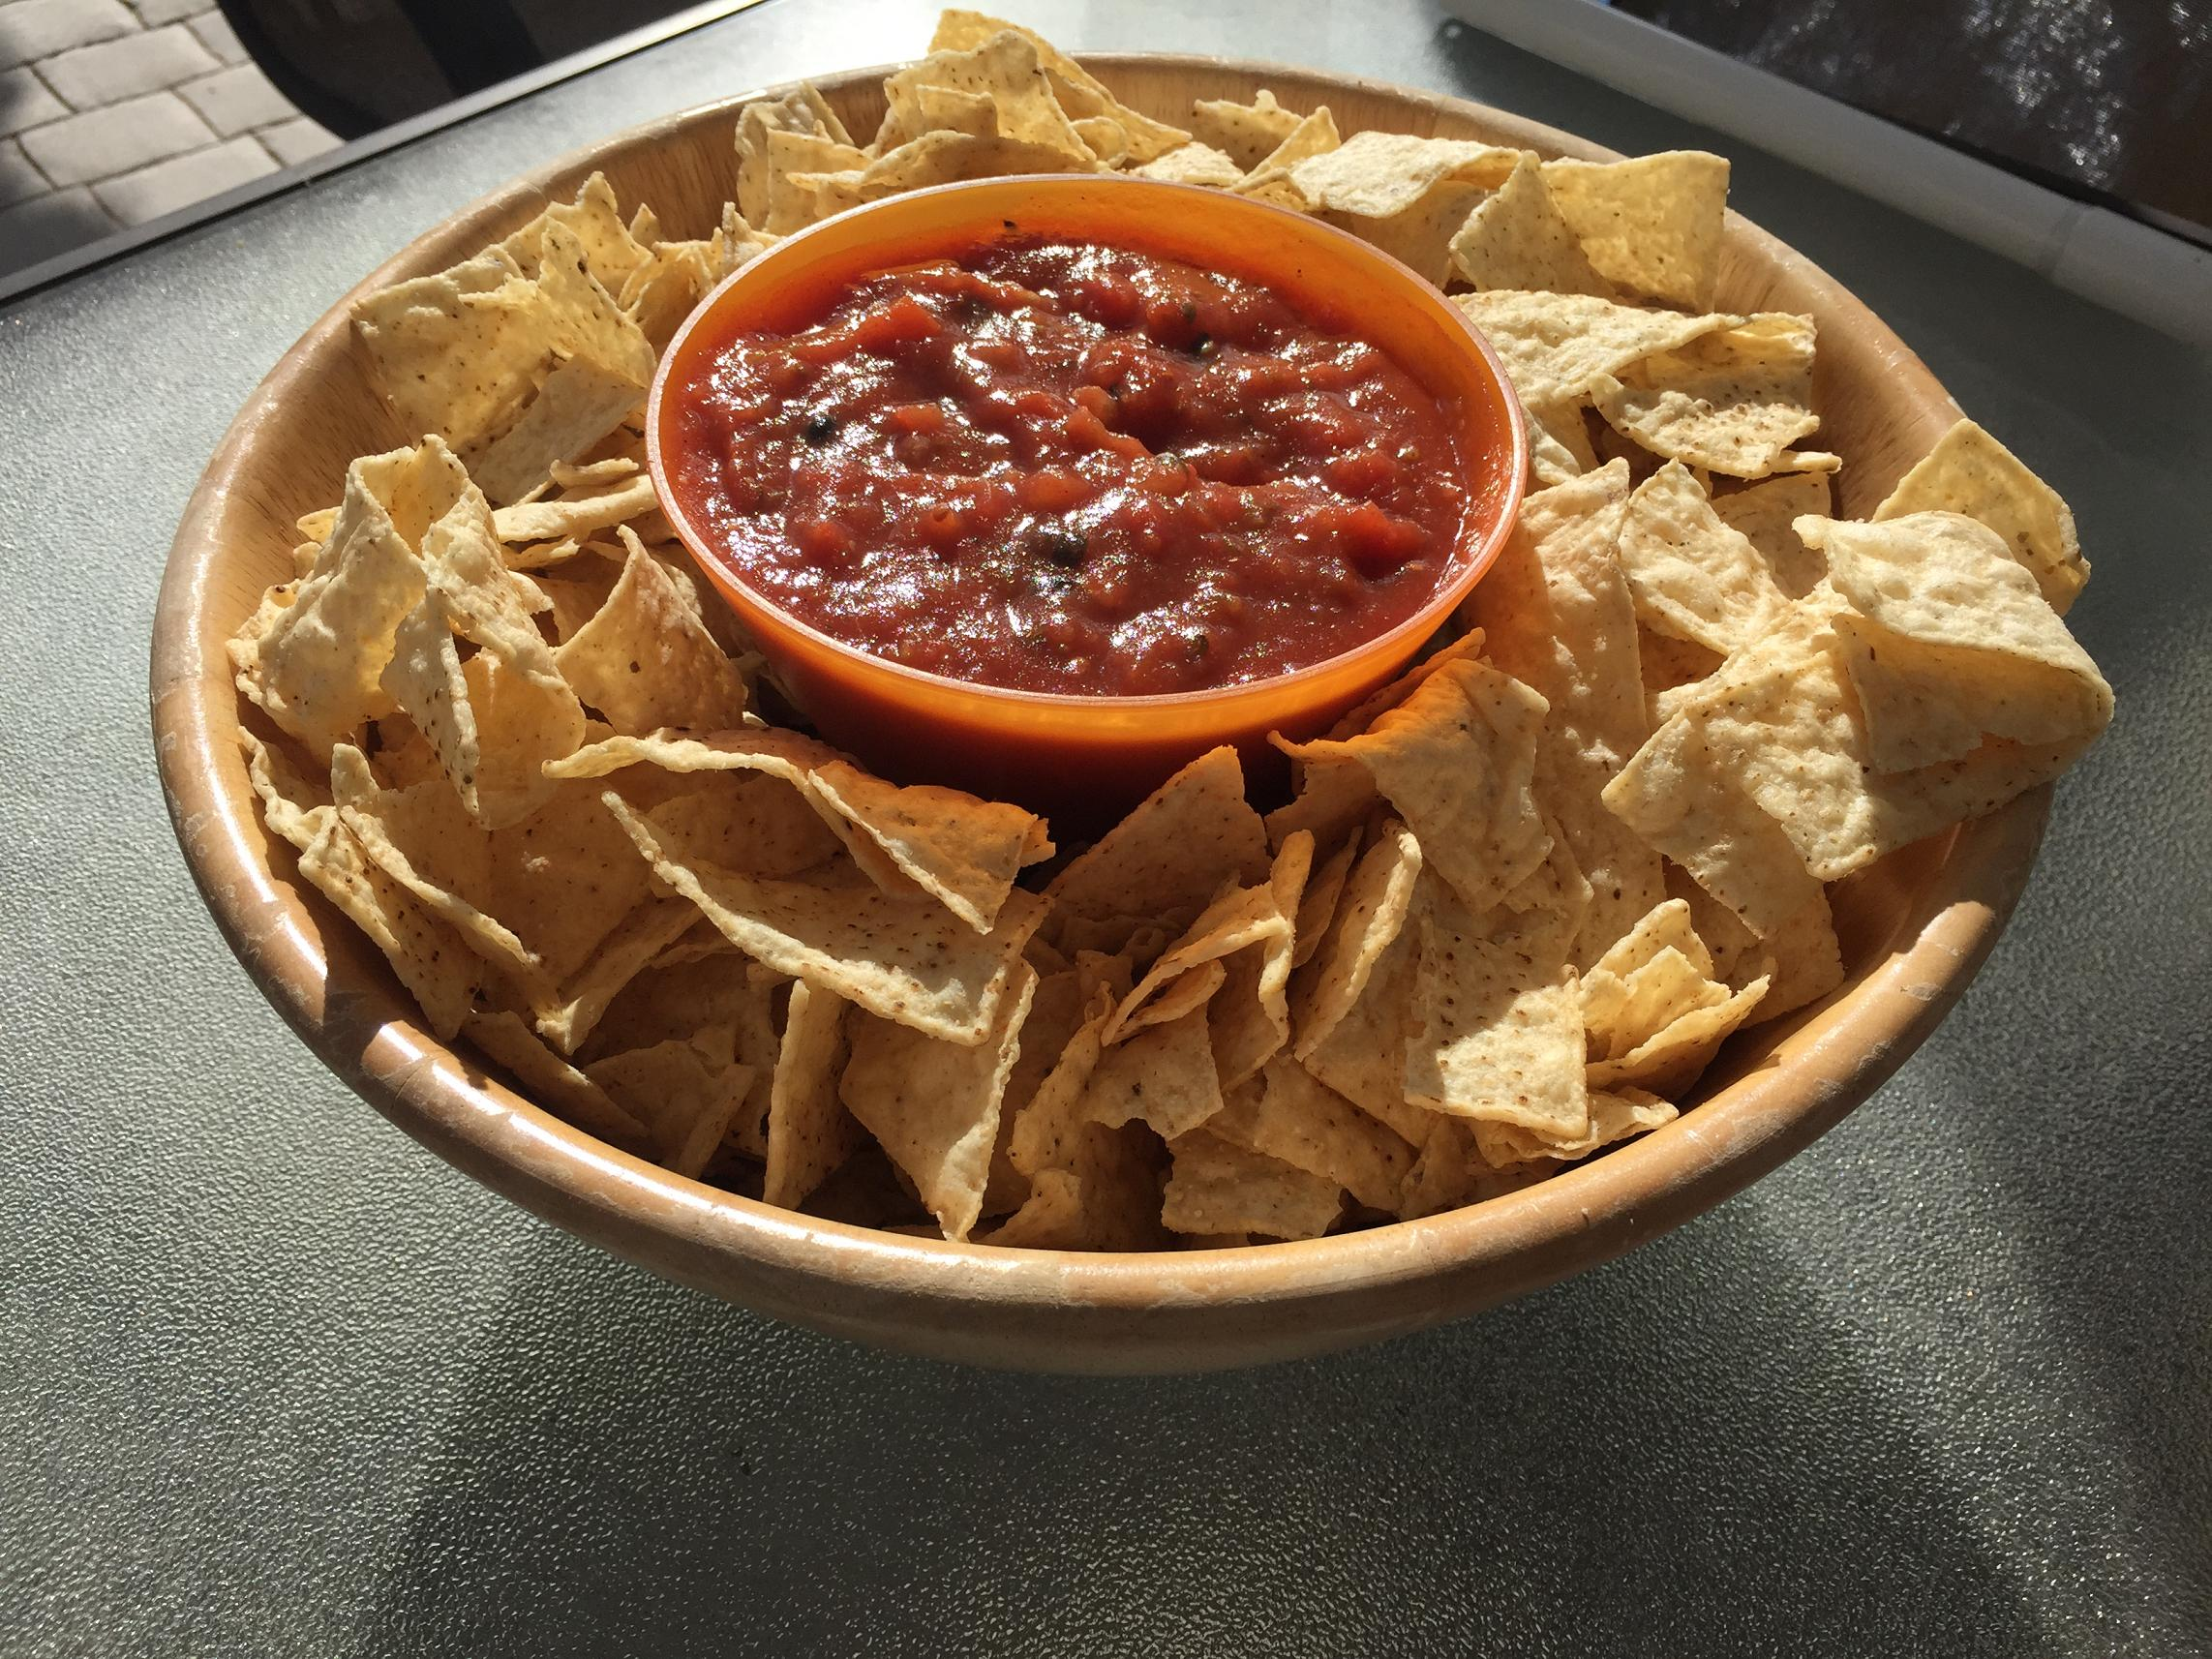 tortilla chips and salsa served in a wooden bowl